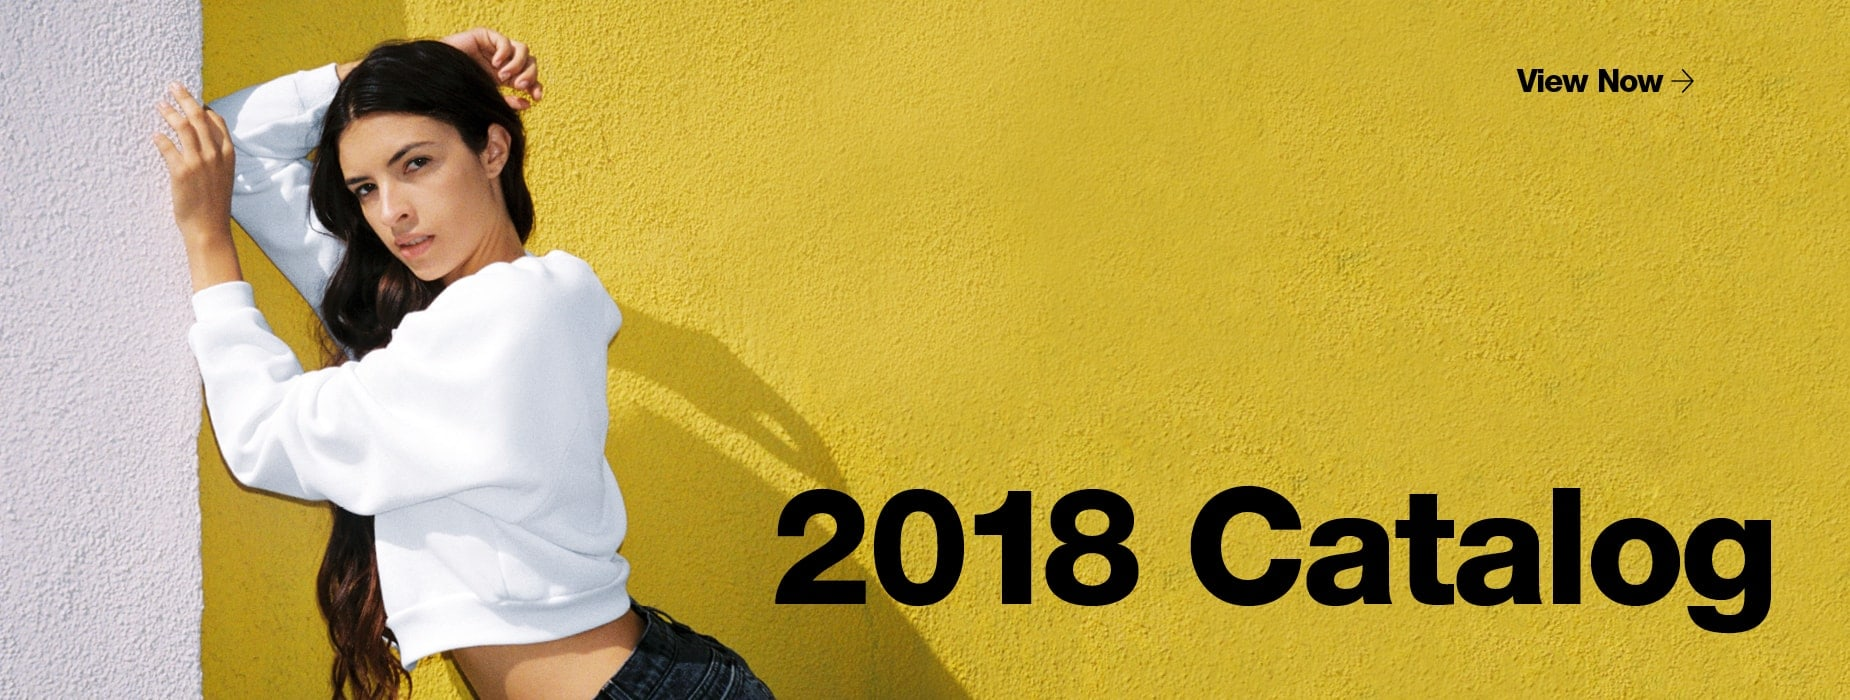 View now our 2018 wholesale online Catalog